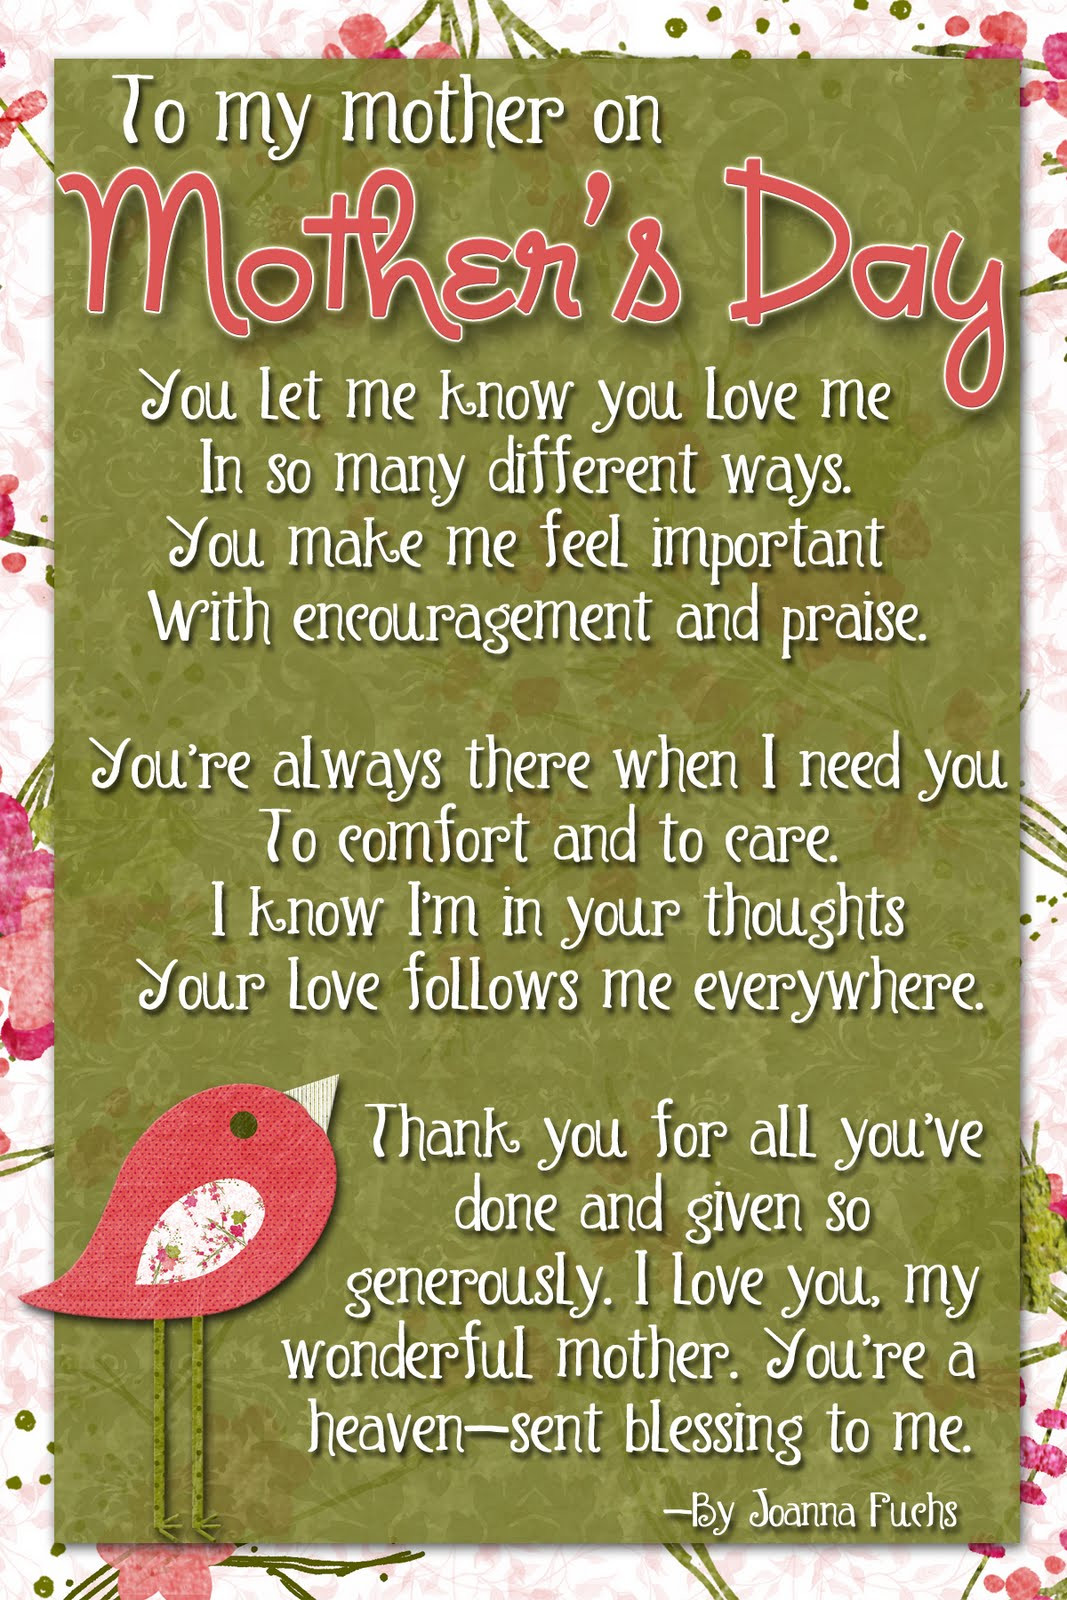 Dead Mother Day Quotes  Mothers Day Quotes Deceased QuotesGram